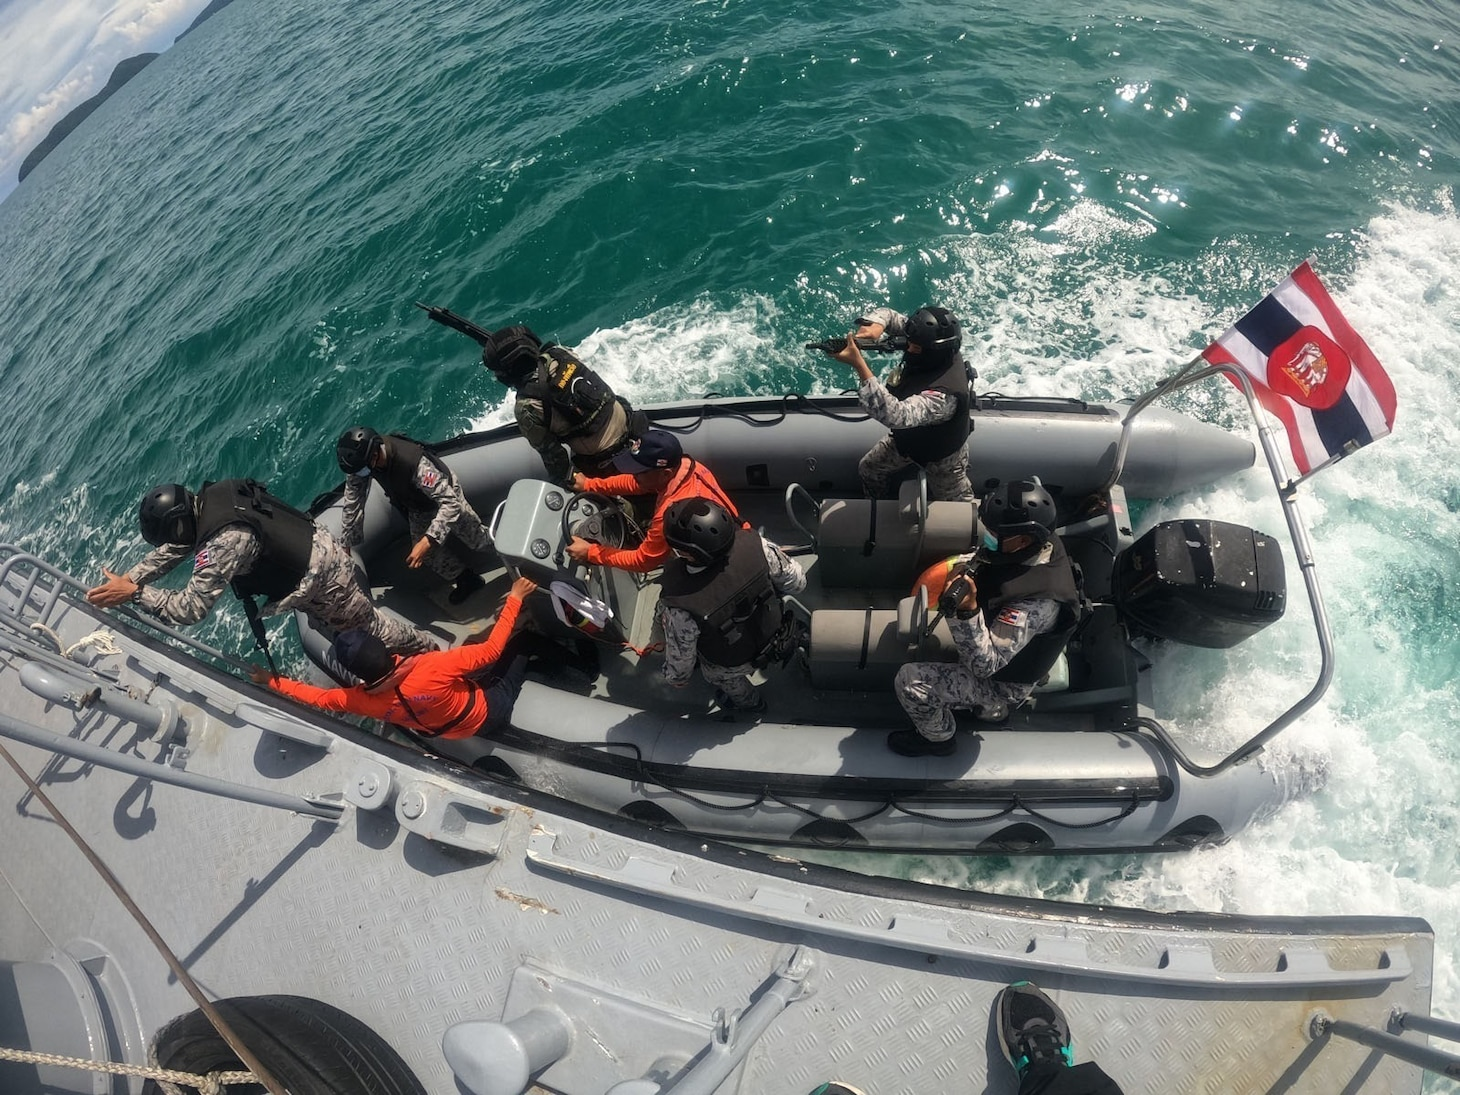 U.S. Navy and Thai MECC train together during Southeast Asia Cooperation and Training (SEACAT) exercise.